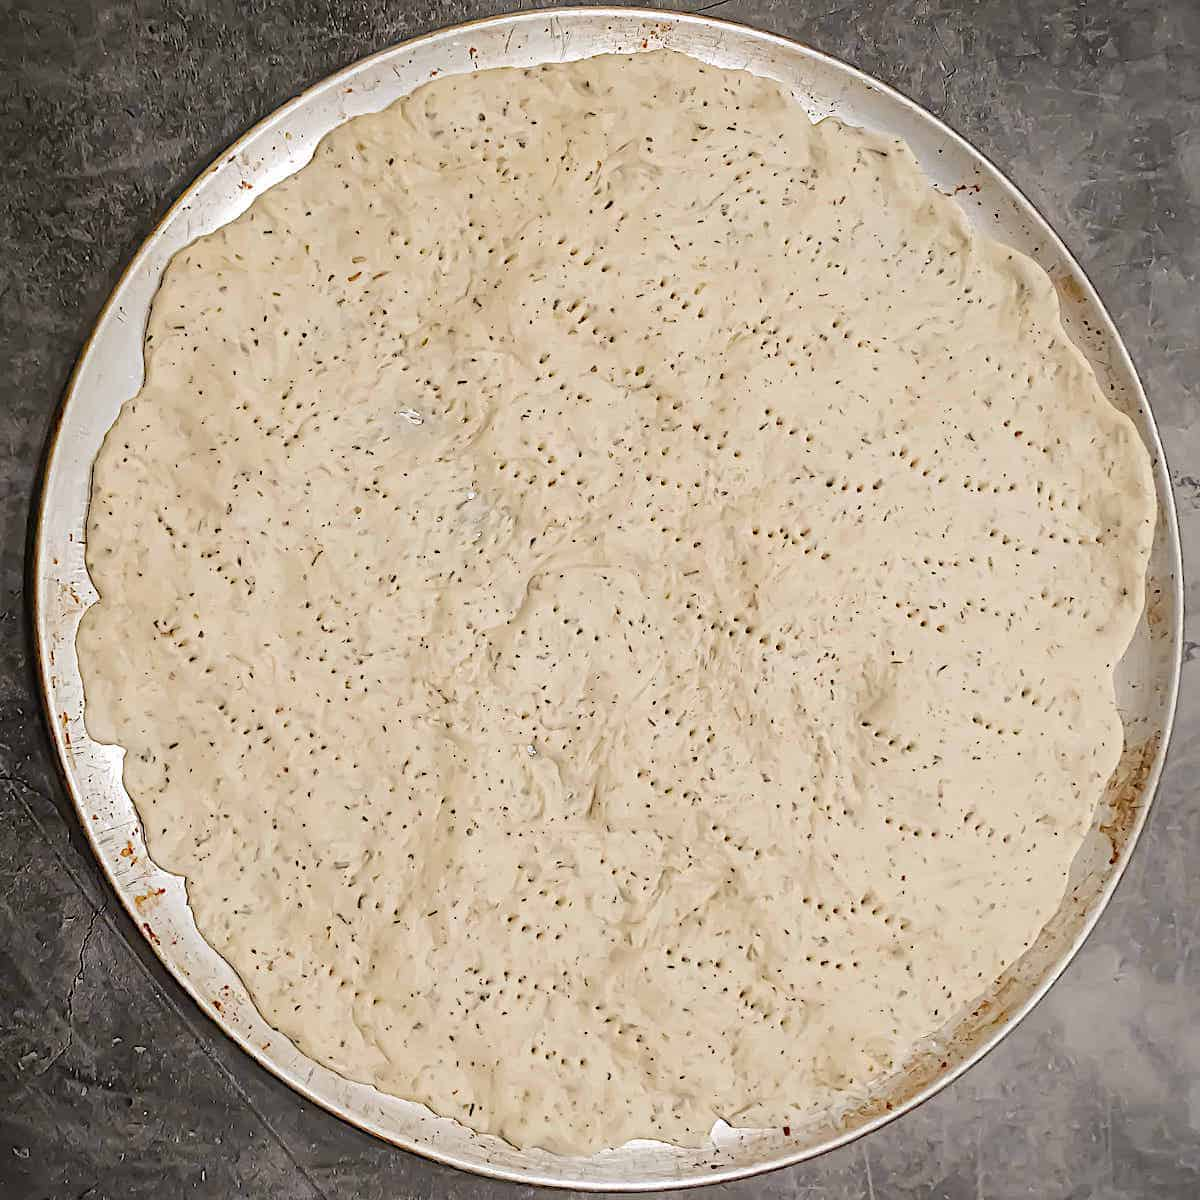 thin crust pizza dough spread into a circle on a pan with holes poked through the dough